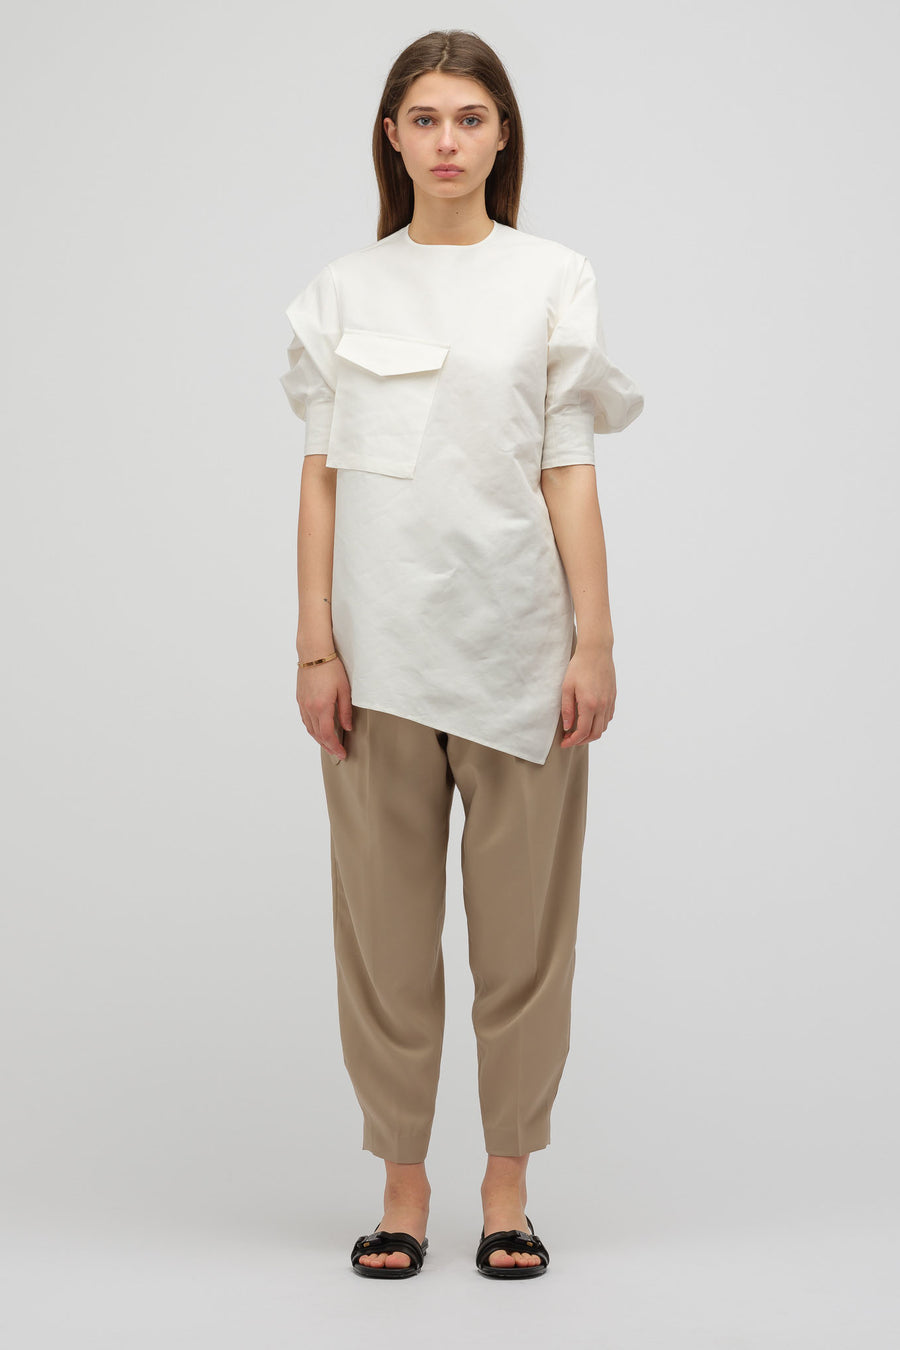 HYKE Asymmetrically Draped Tunic Shirt in White - Notre